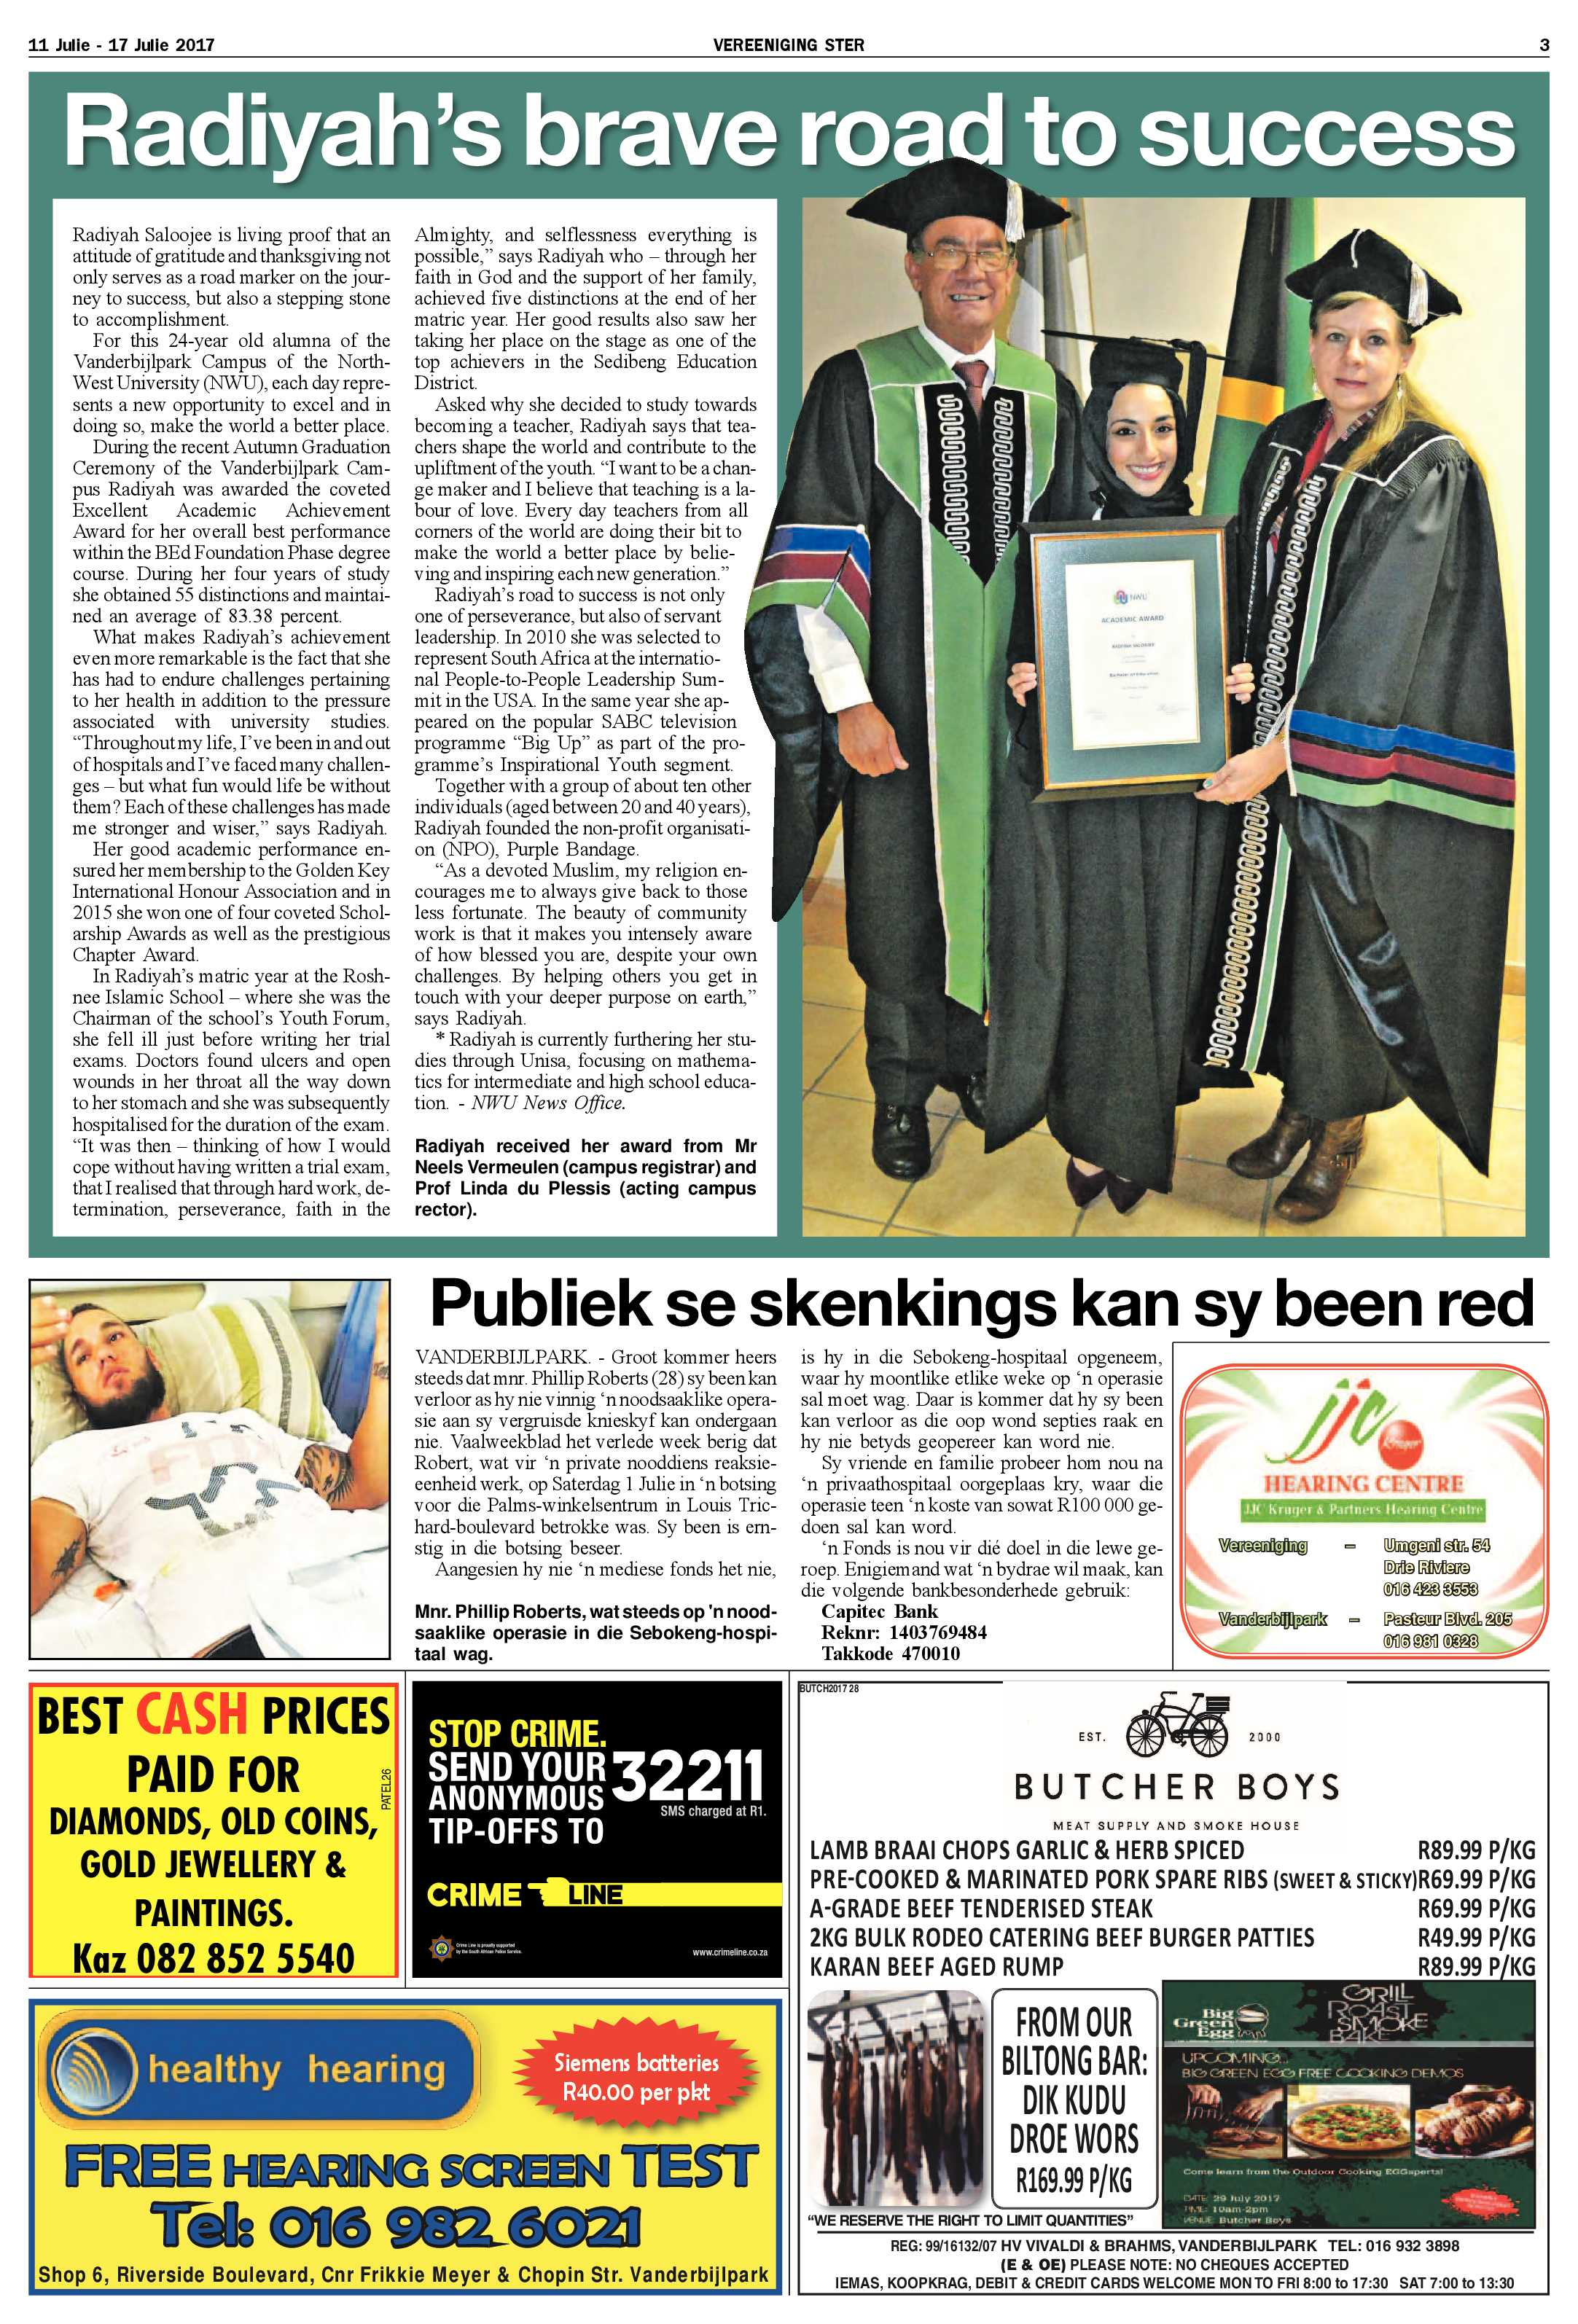 vereeniging-ster-11-17-julie-2017-epapers-page-3